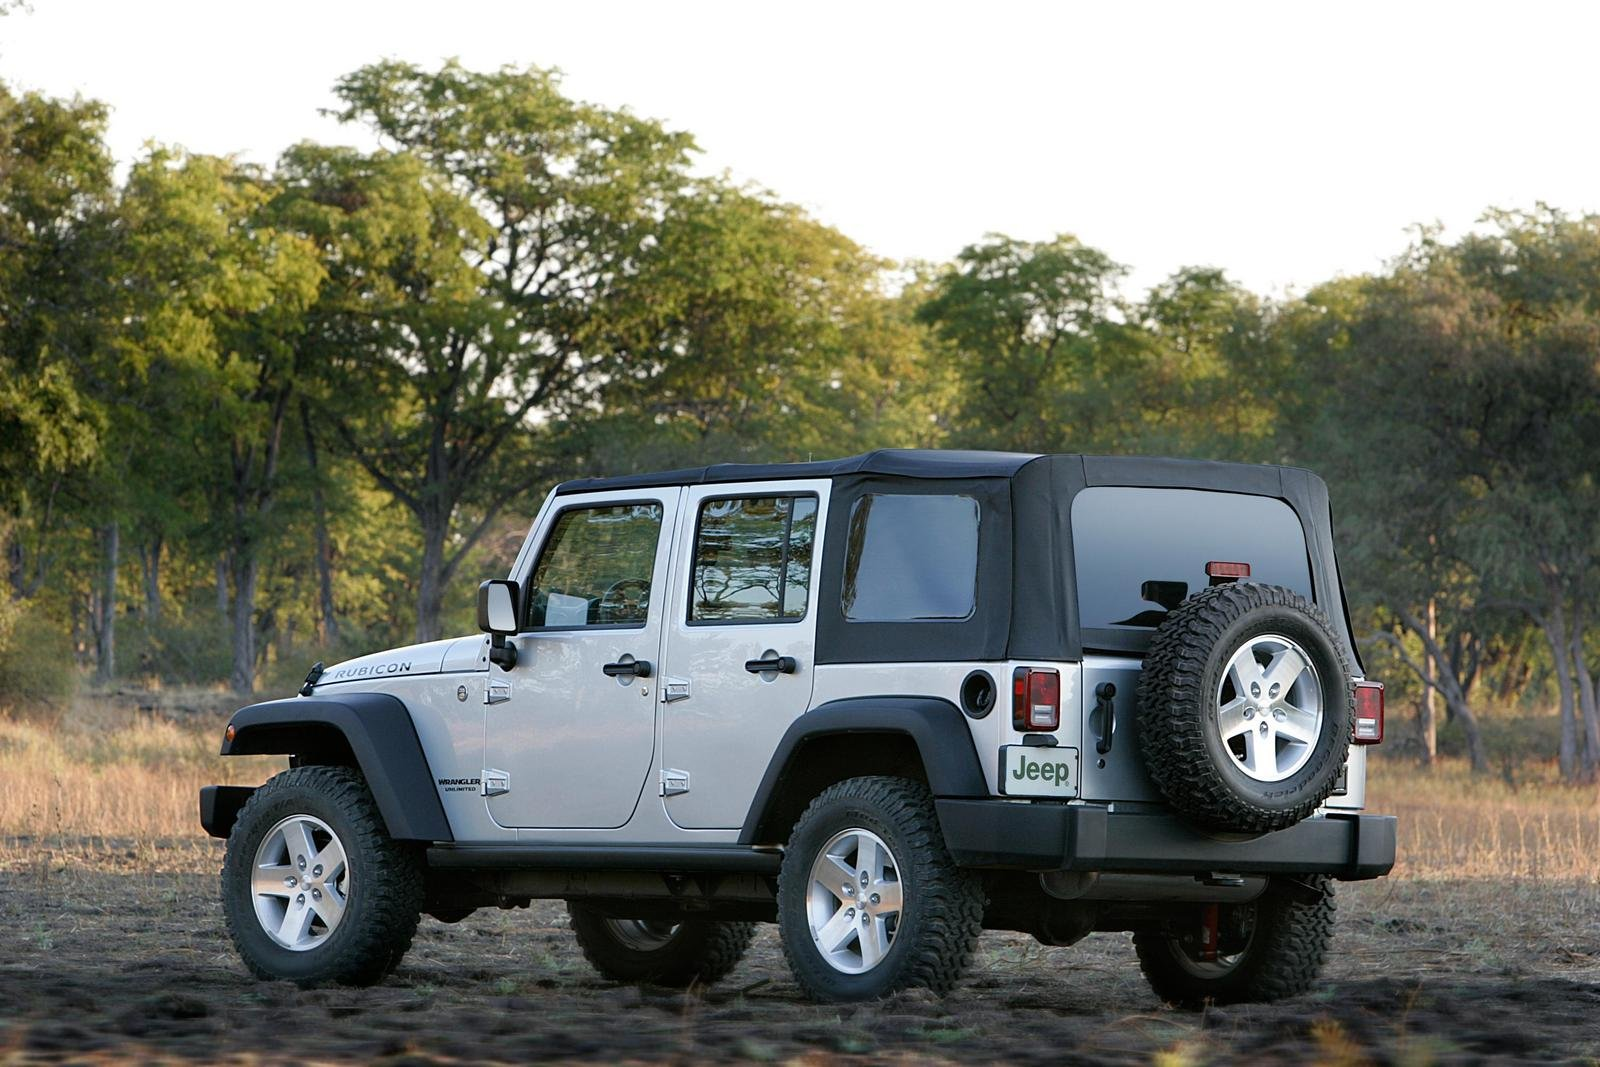 2007 jeep wrangler unlimited picture 170078 car review. Black Bedroom Furniture Sets. Home Design Ideas